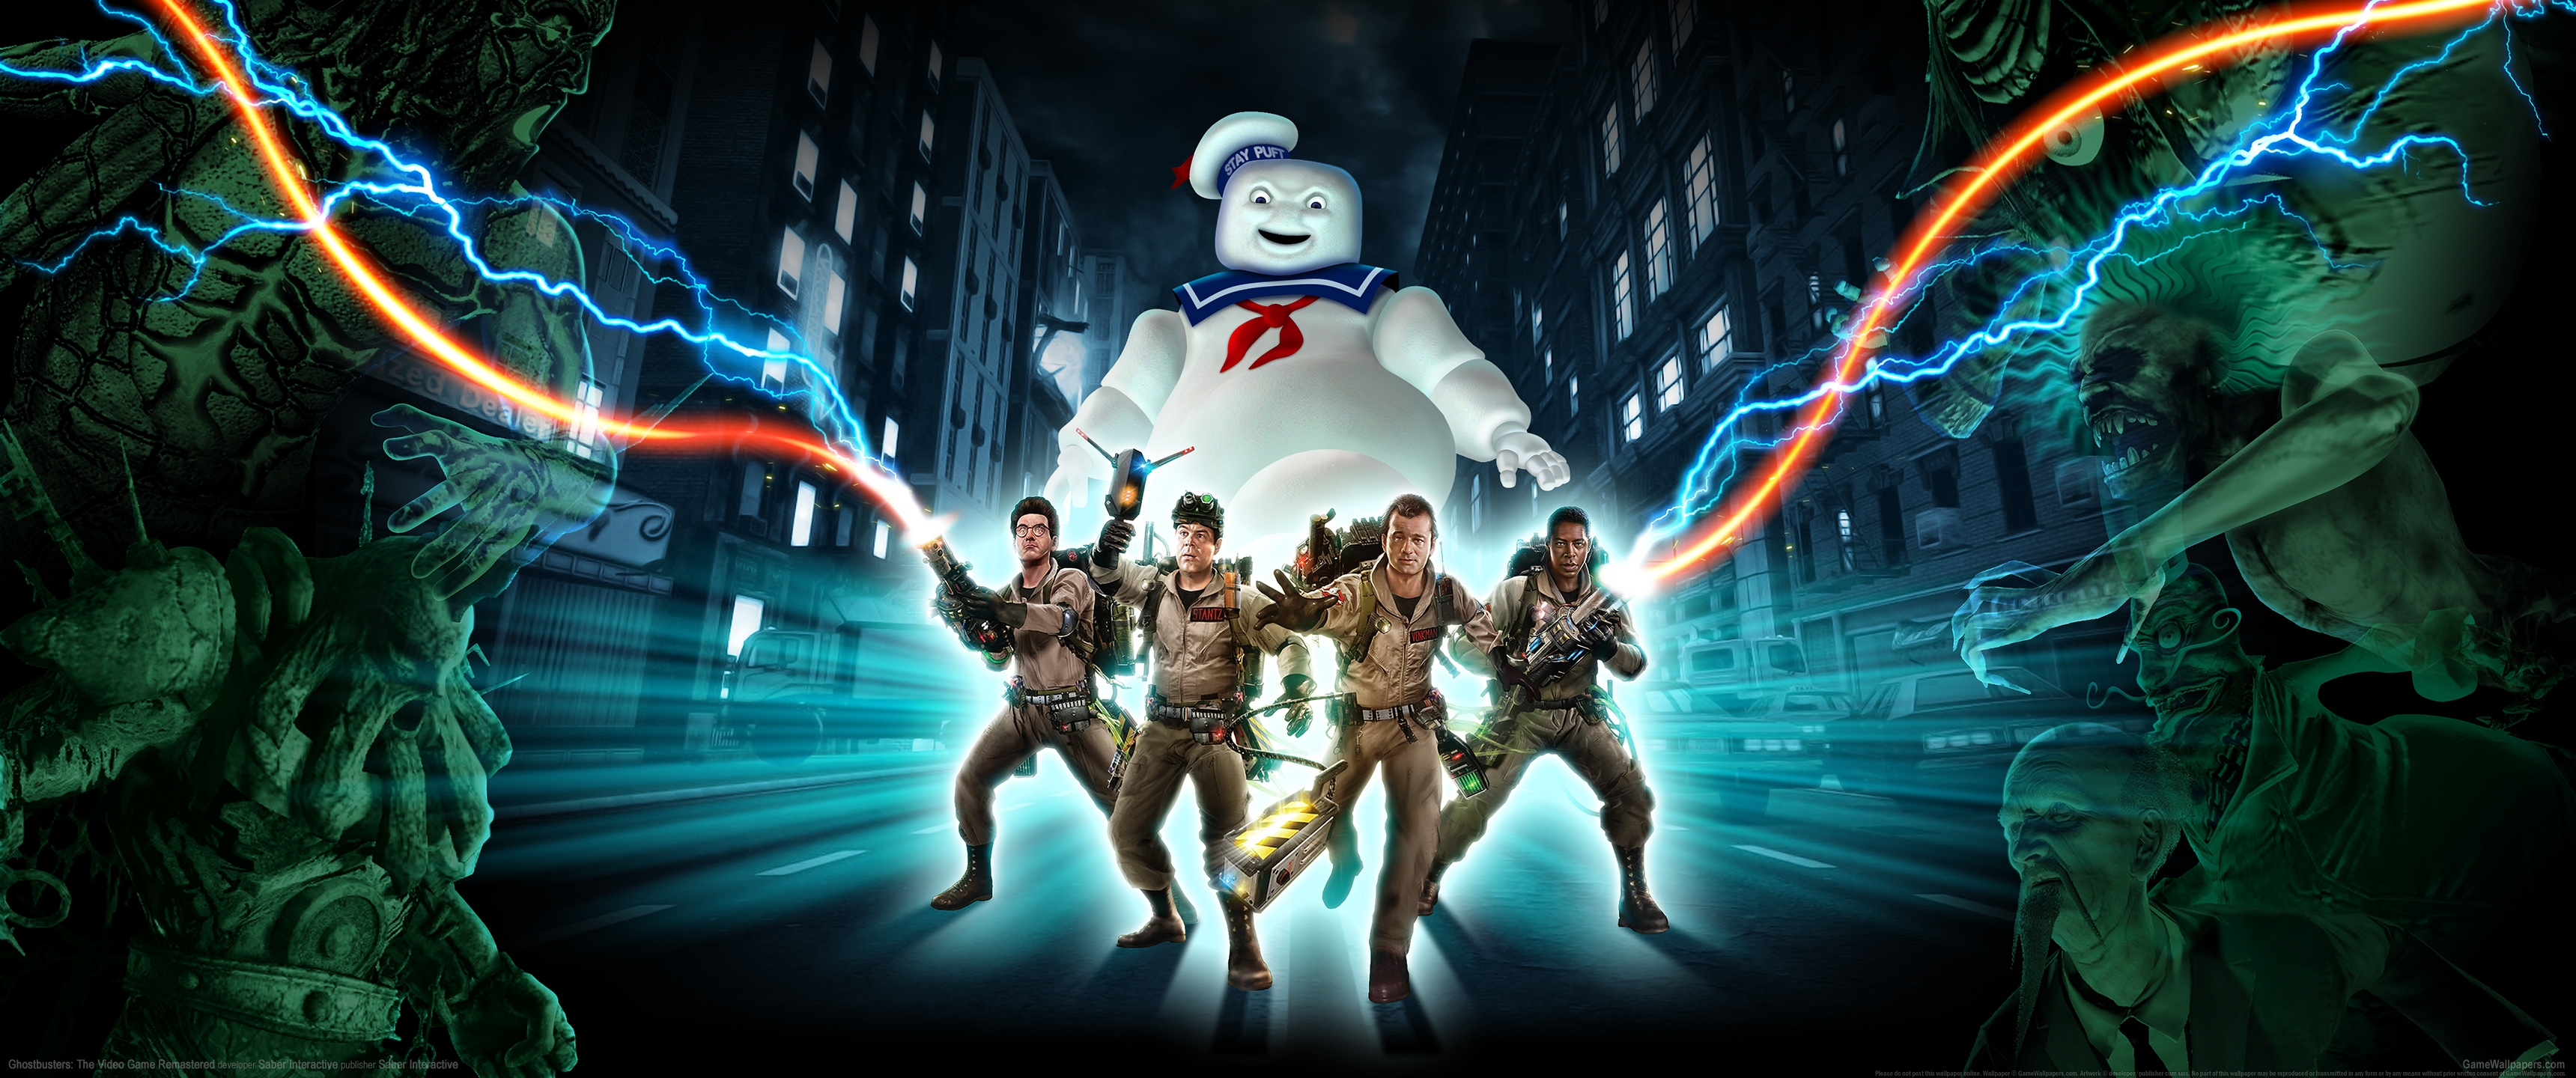 Ghostbusters: The Video Game Remastered 3440x1440 Hintergrundbild 01